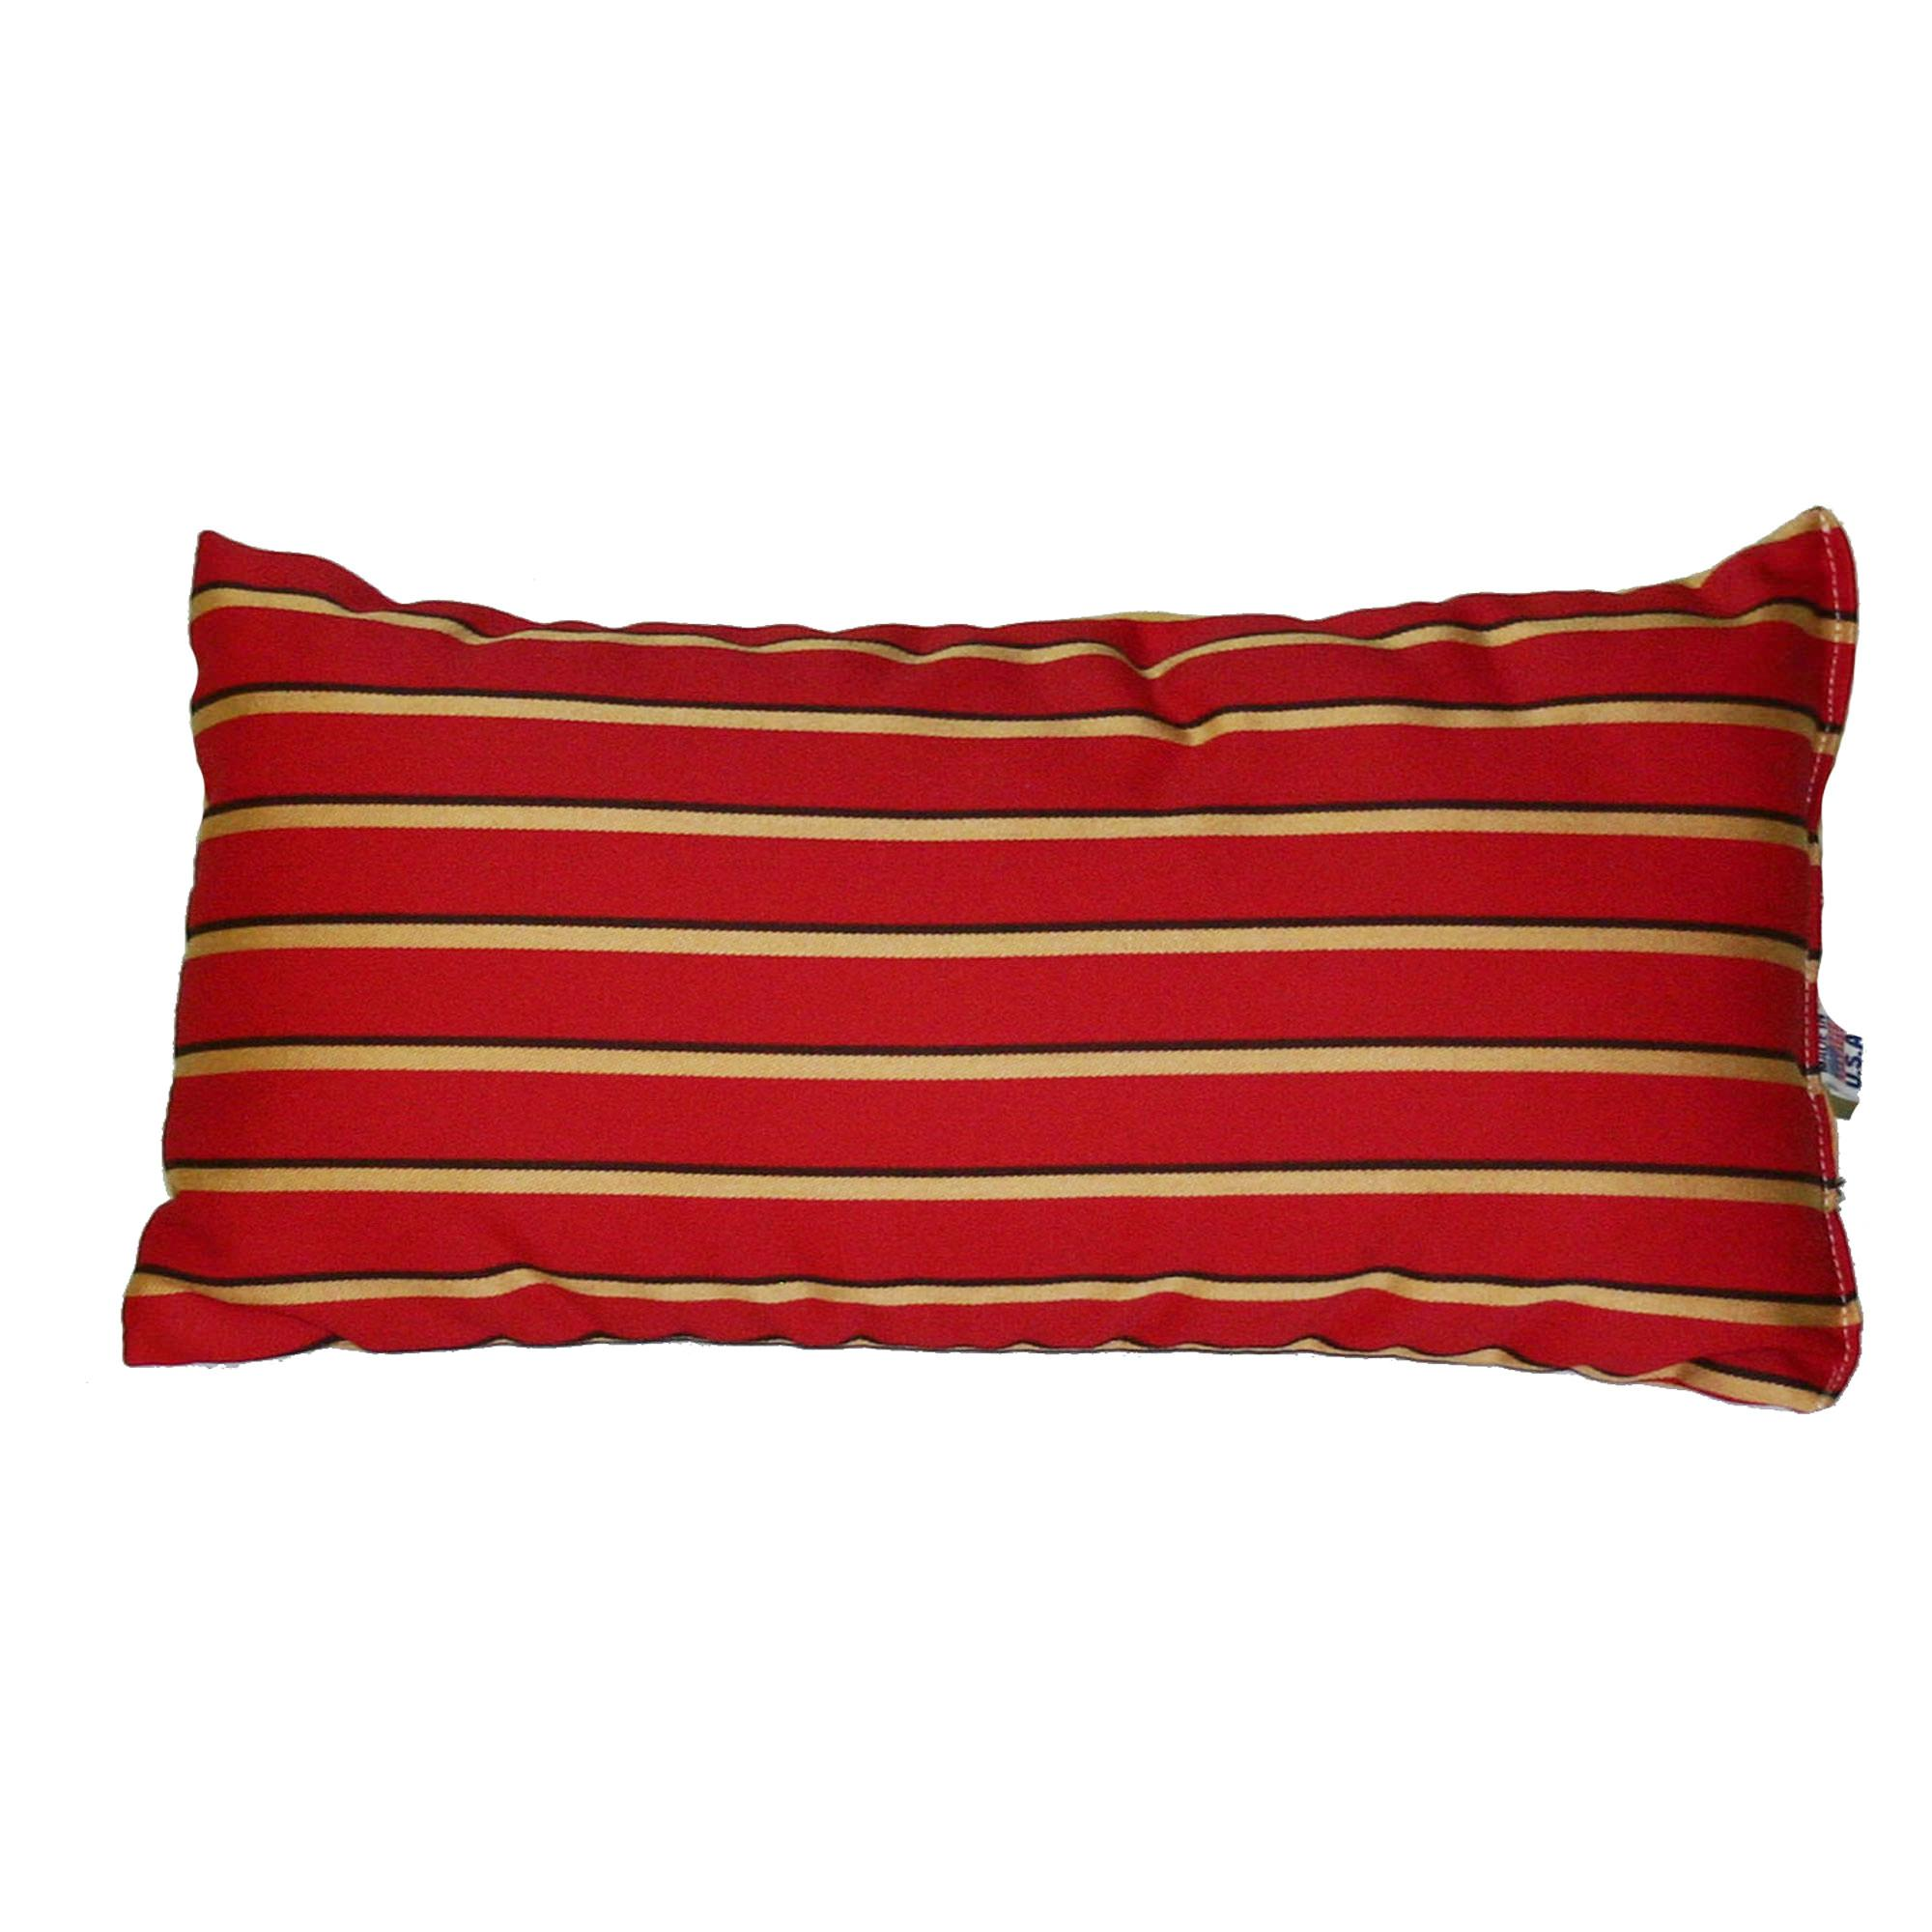 Sunbrella Throw Pillows Clearance : Shop Harwood Crimson Sunbrella Outdoor Throw Pillow - Essentials by DFO; Pillows; Outdoors ...